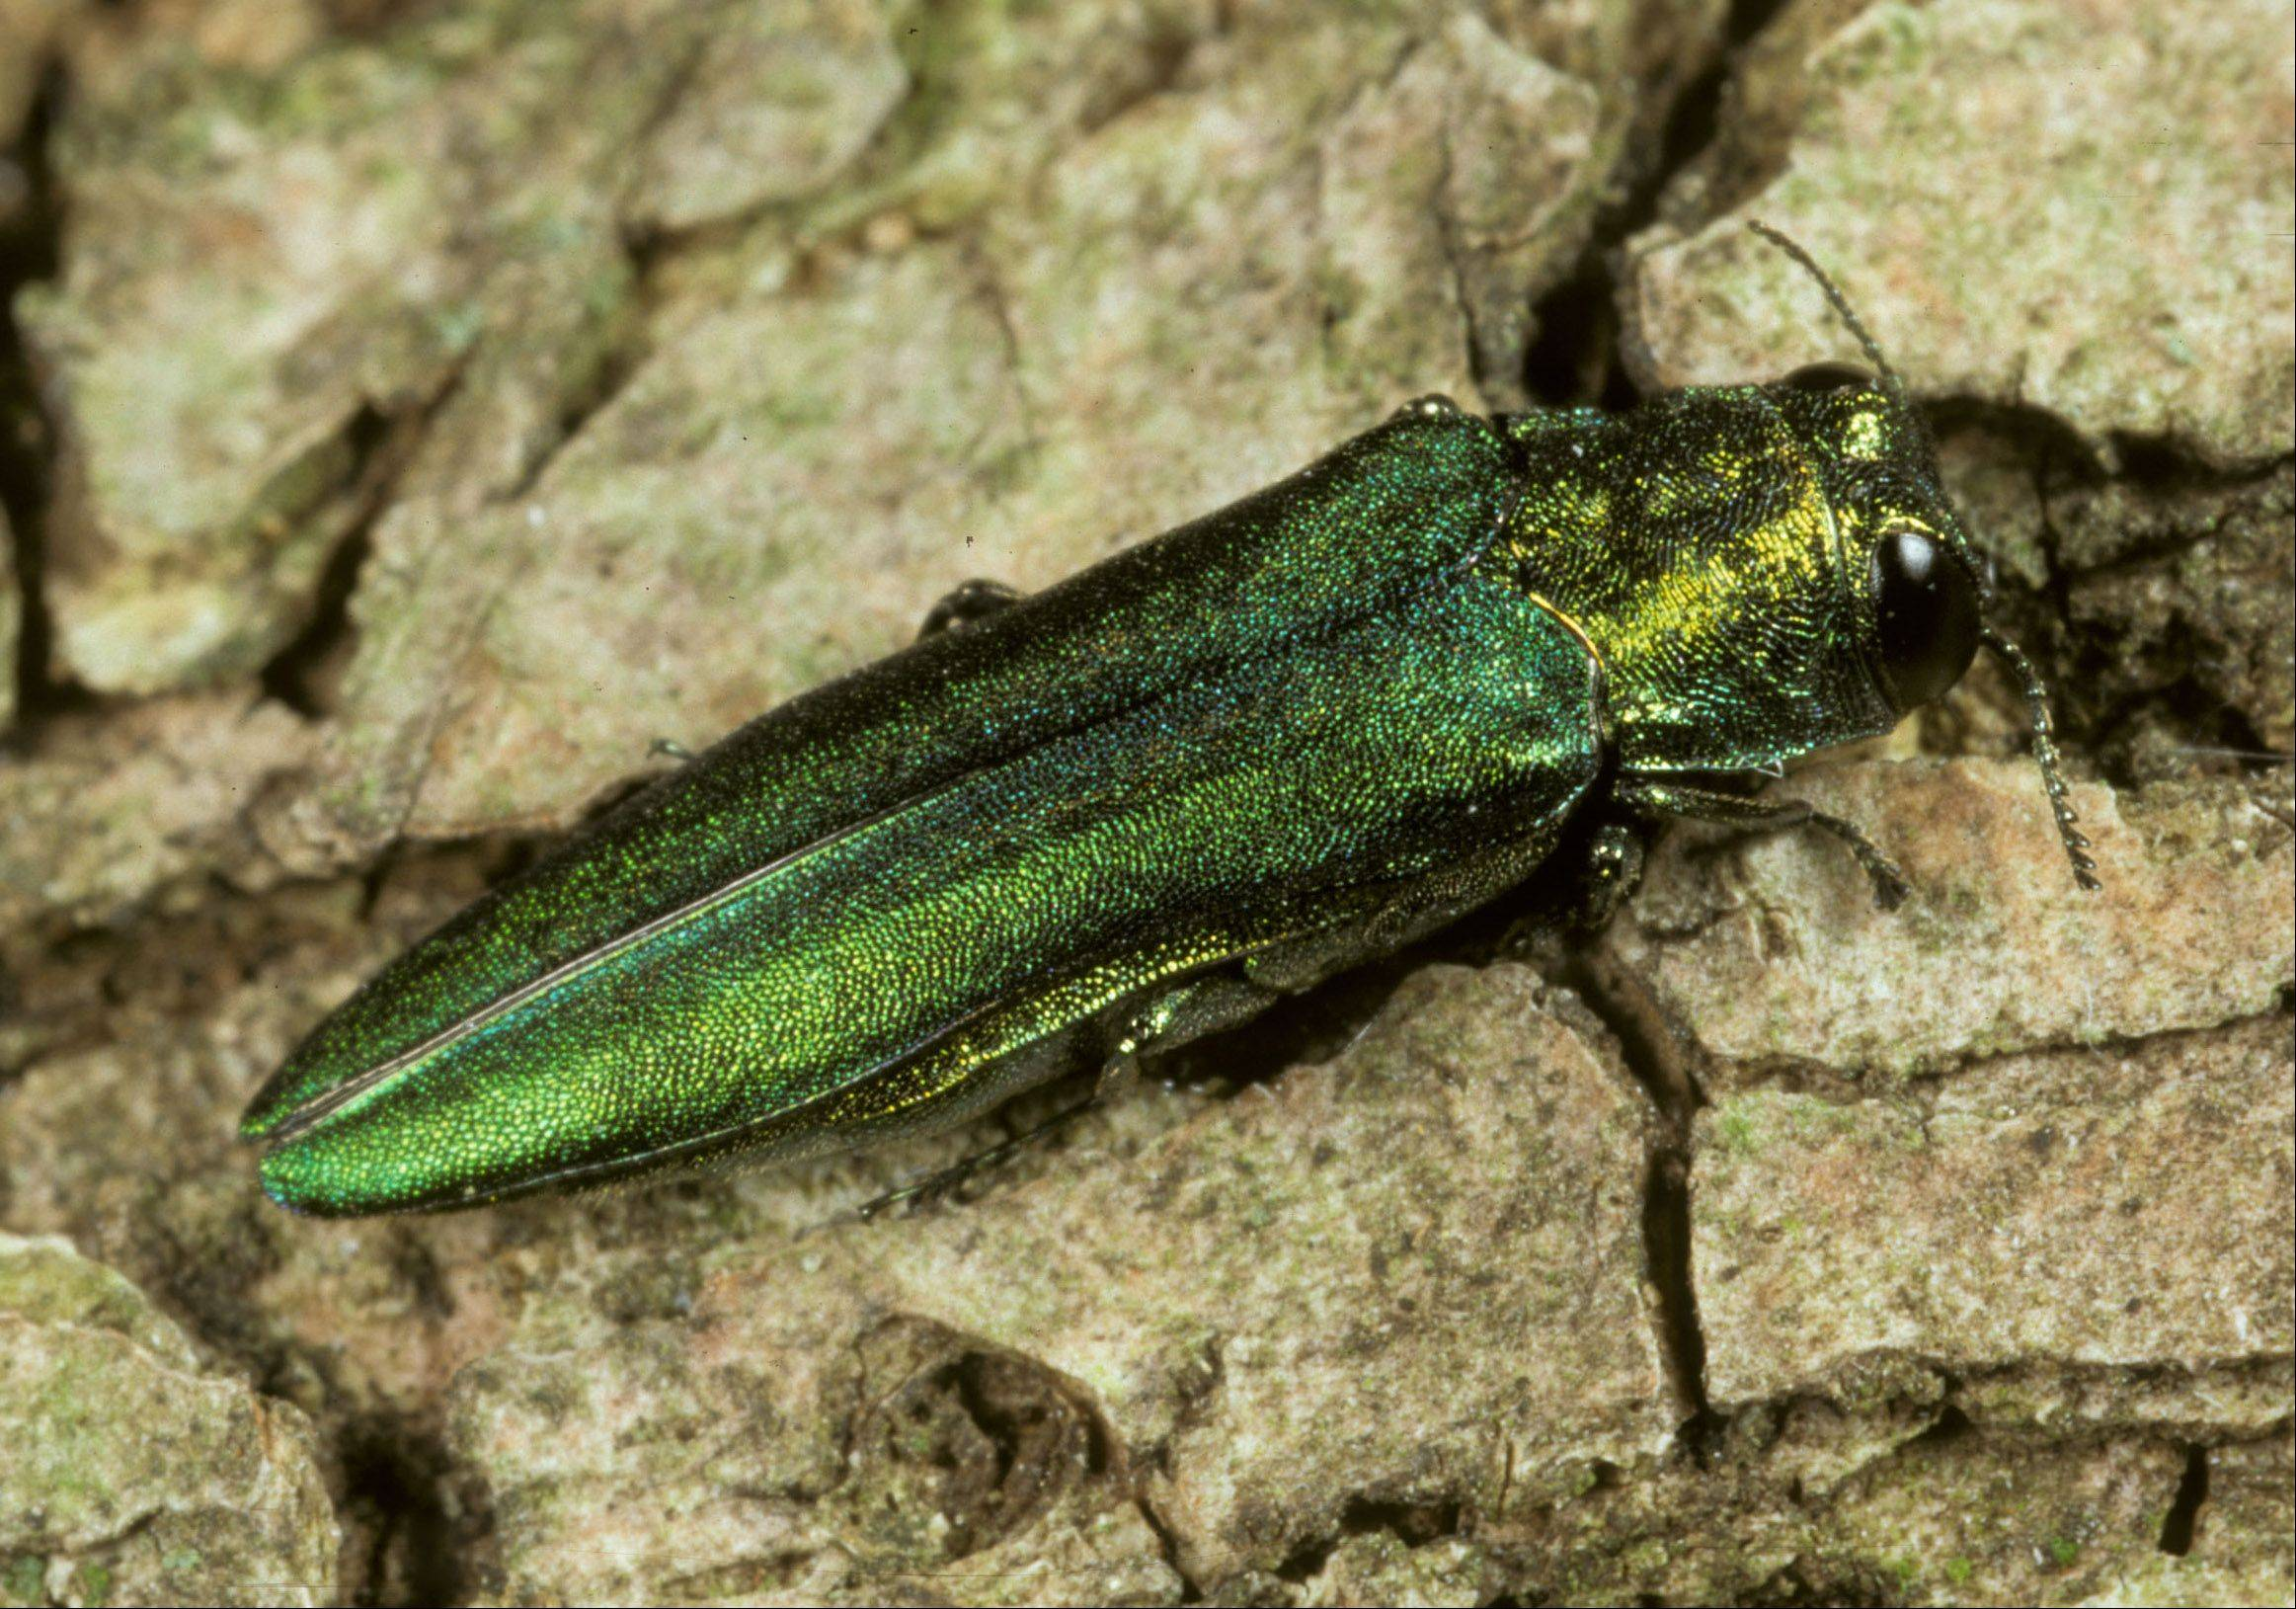 2 Illinois counties added to ash borer quarantine